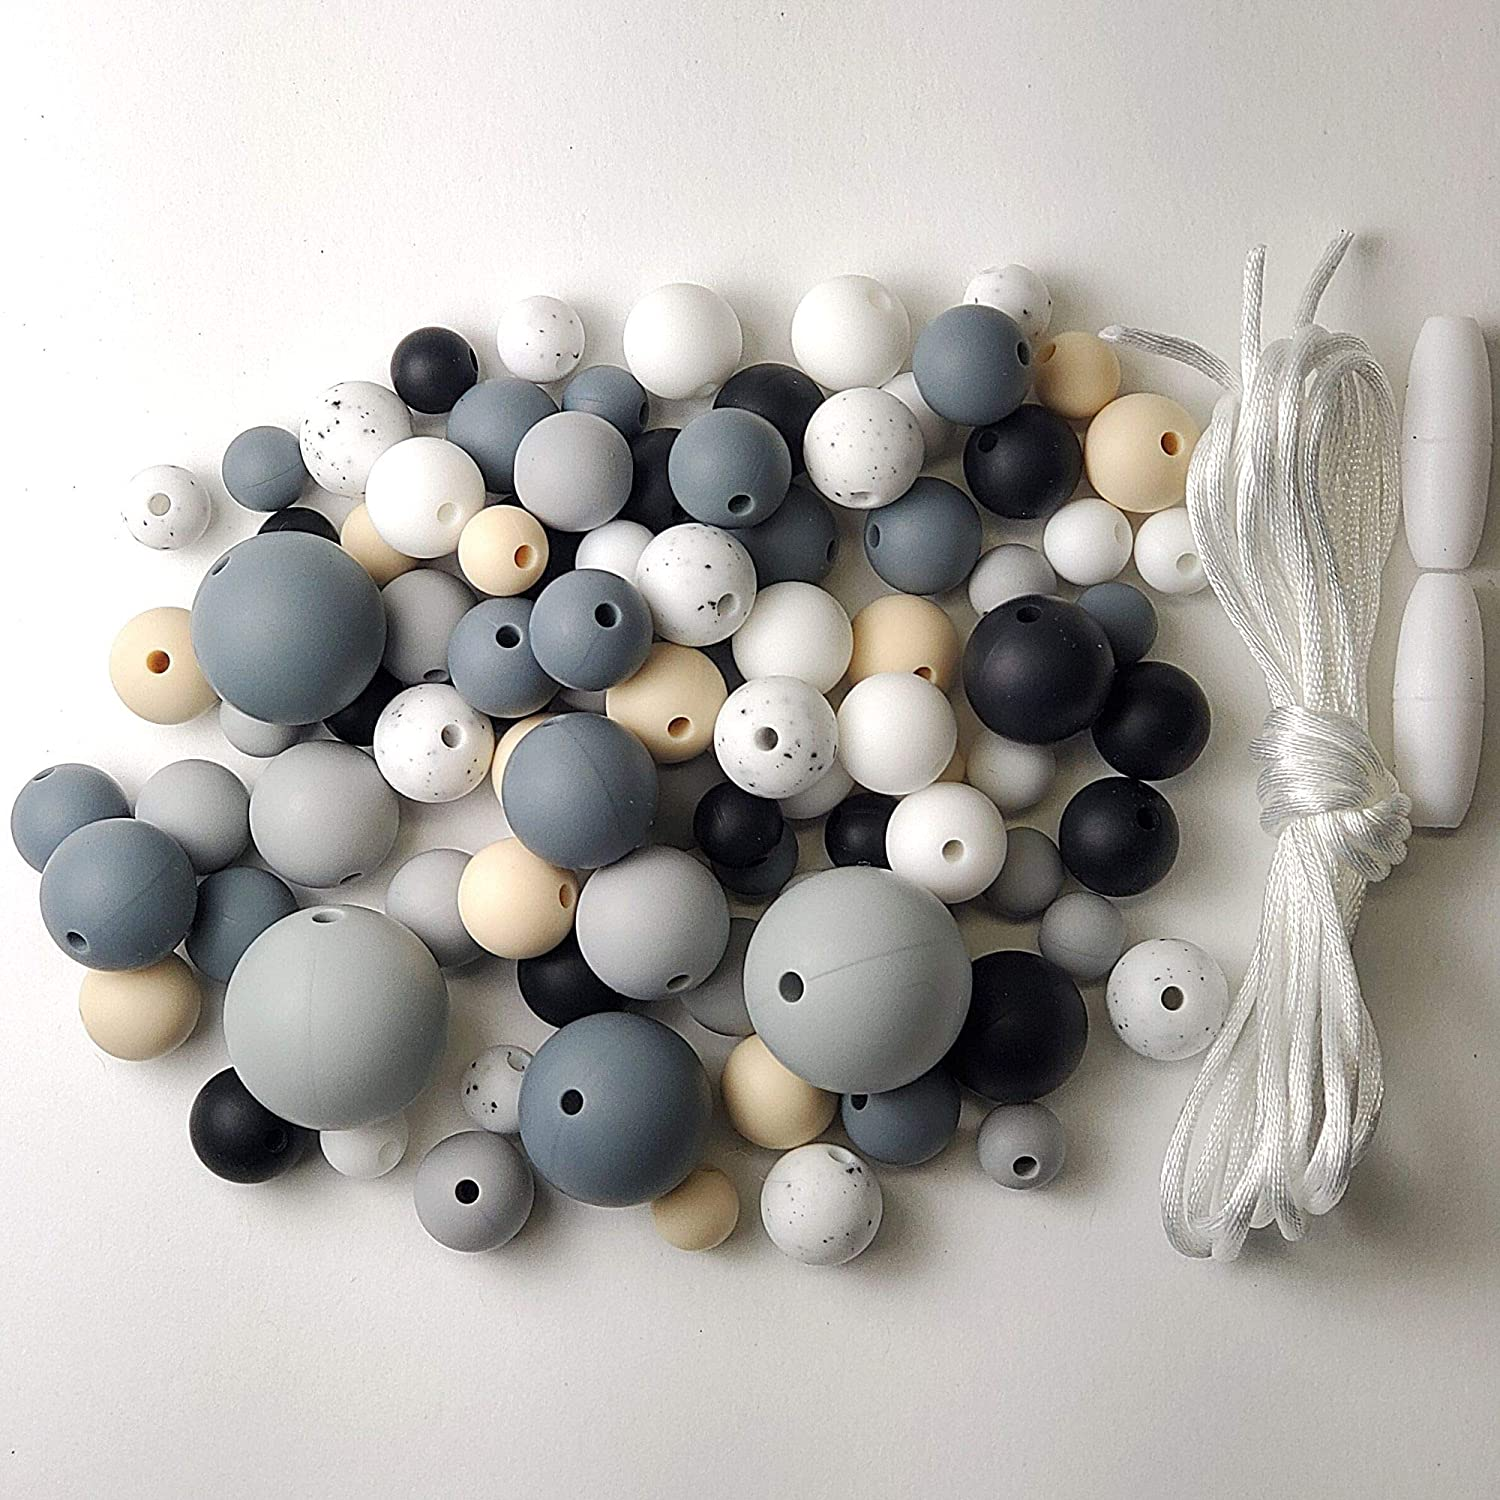 Silicone Beads - 100PC Various Round Size Beads - Jewelry Necklace Bracelet Making Kit - Food Grade BPA Free Arts and Crafts Supplies (100PC Charcoal)